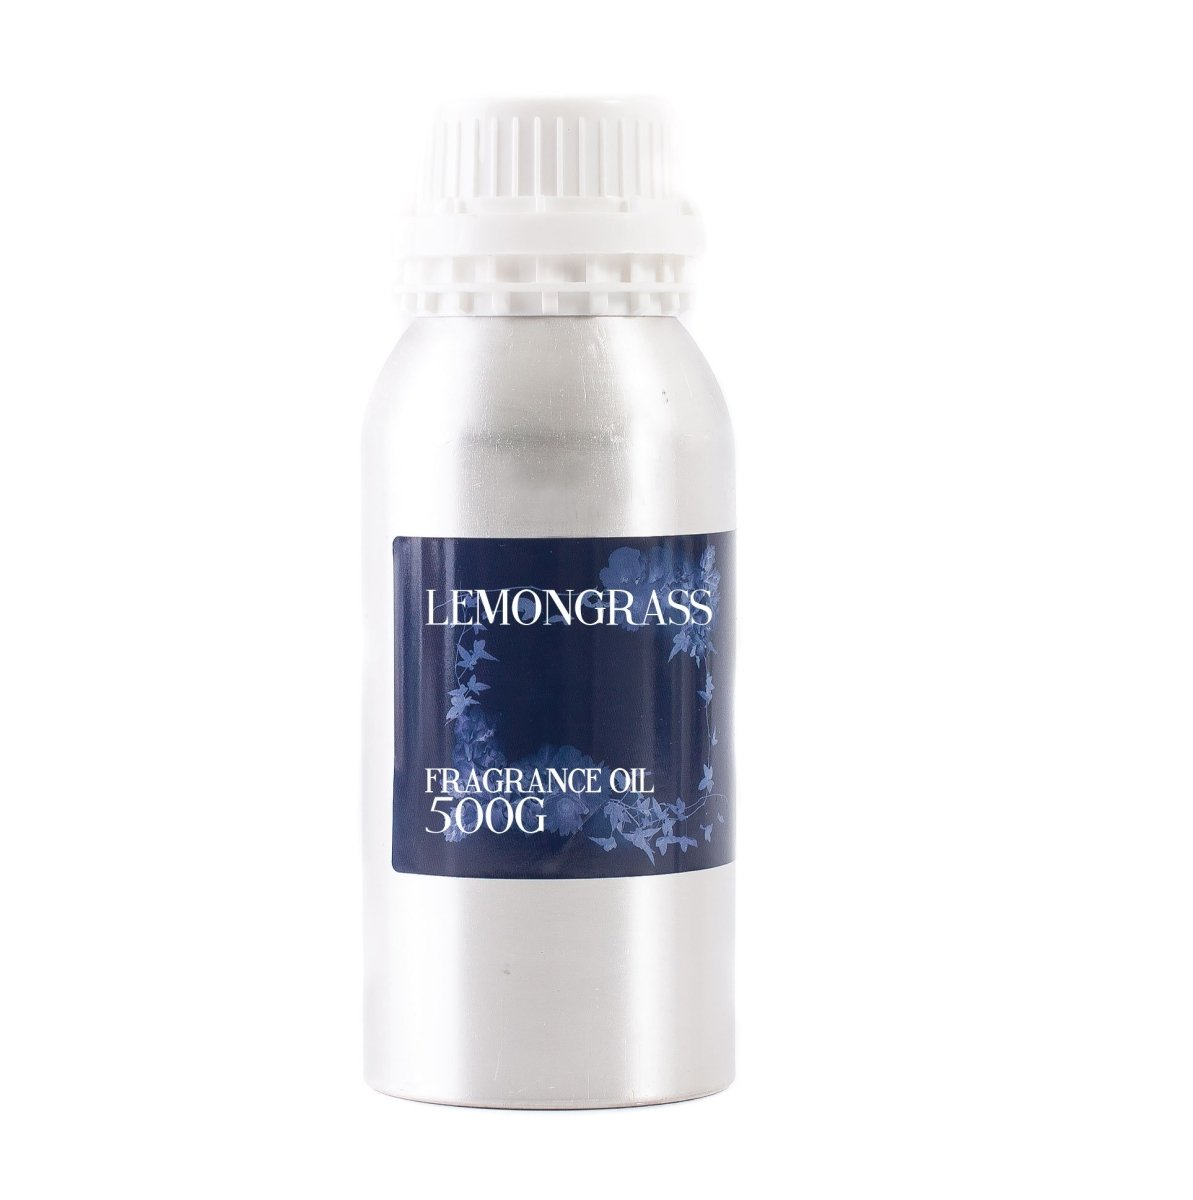 Lemongrass Fragrance Oil - Mystic Moments UK